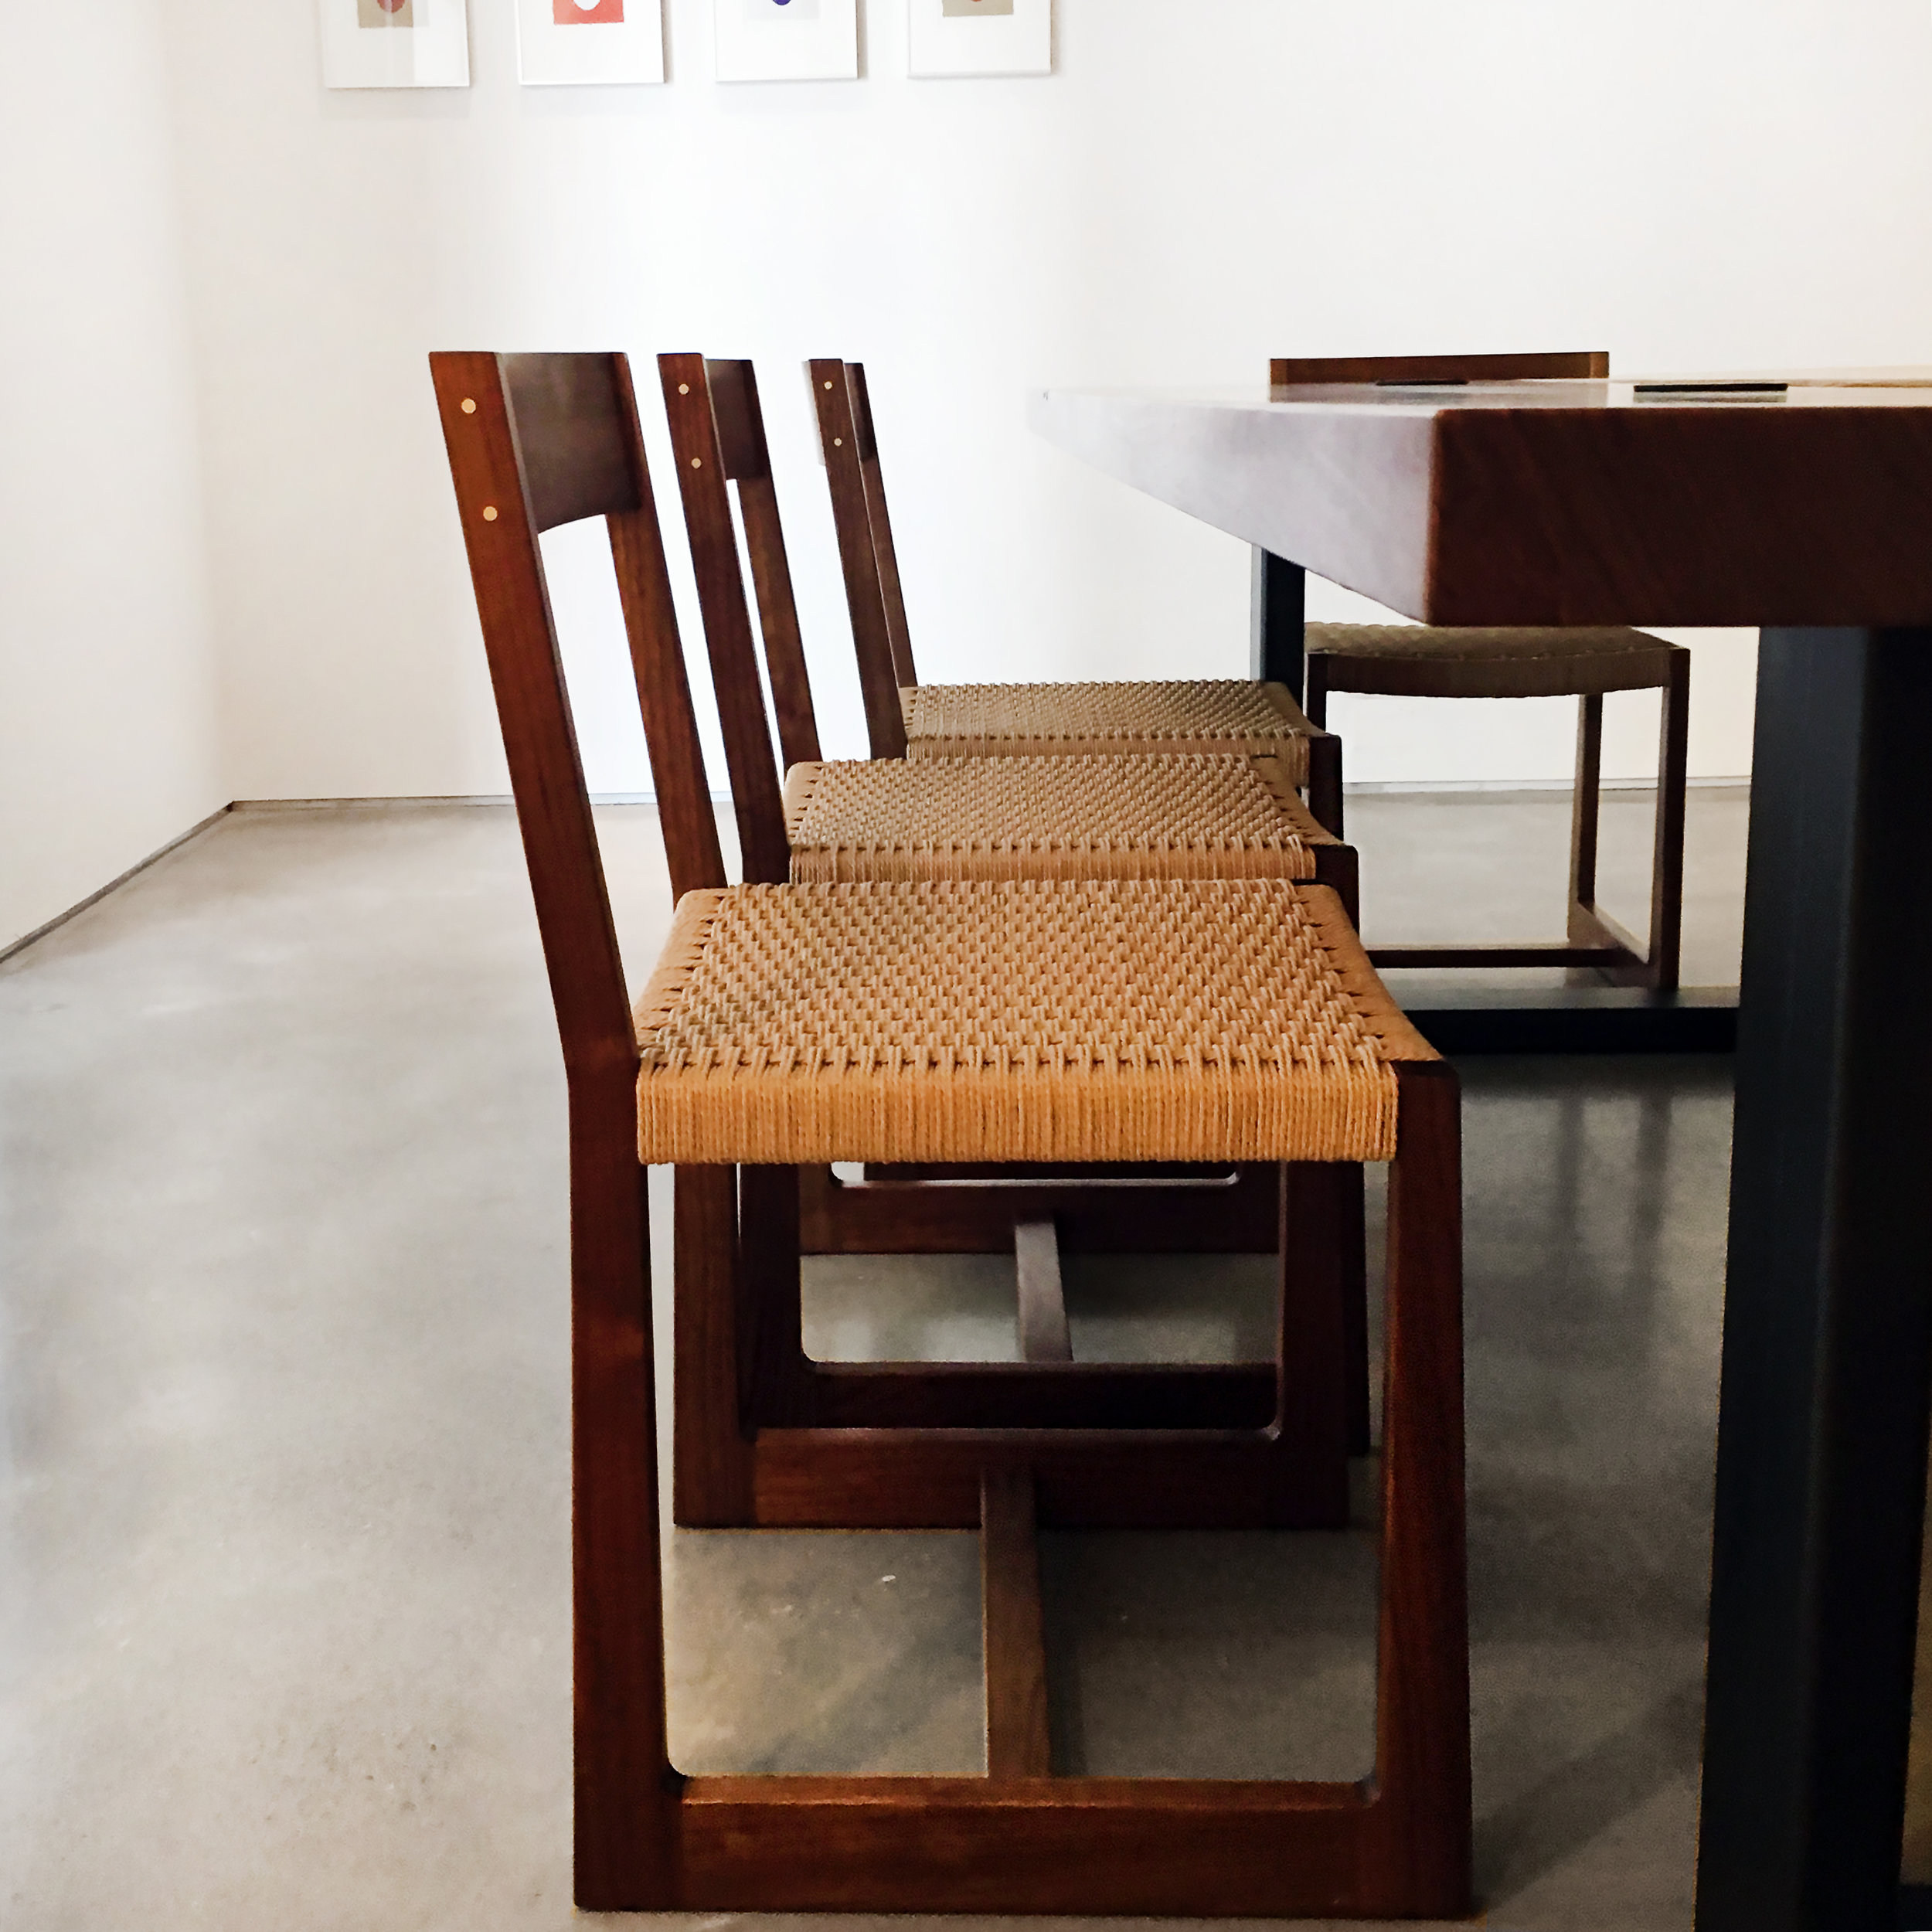 Matteawan dining chair in walnut with natural Danish cord